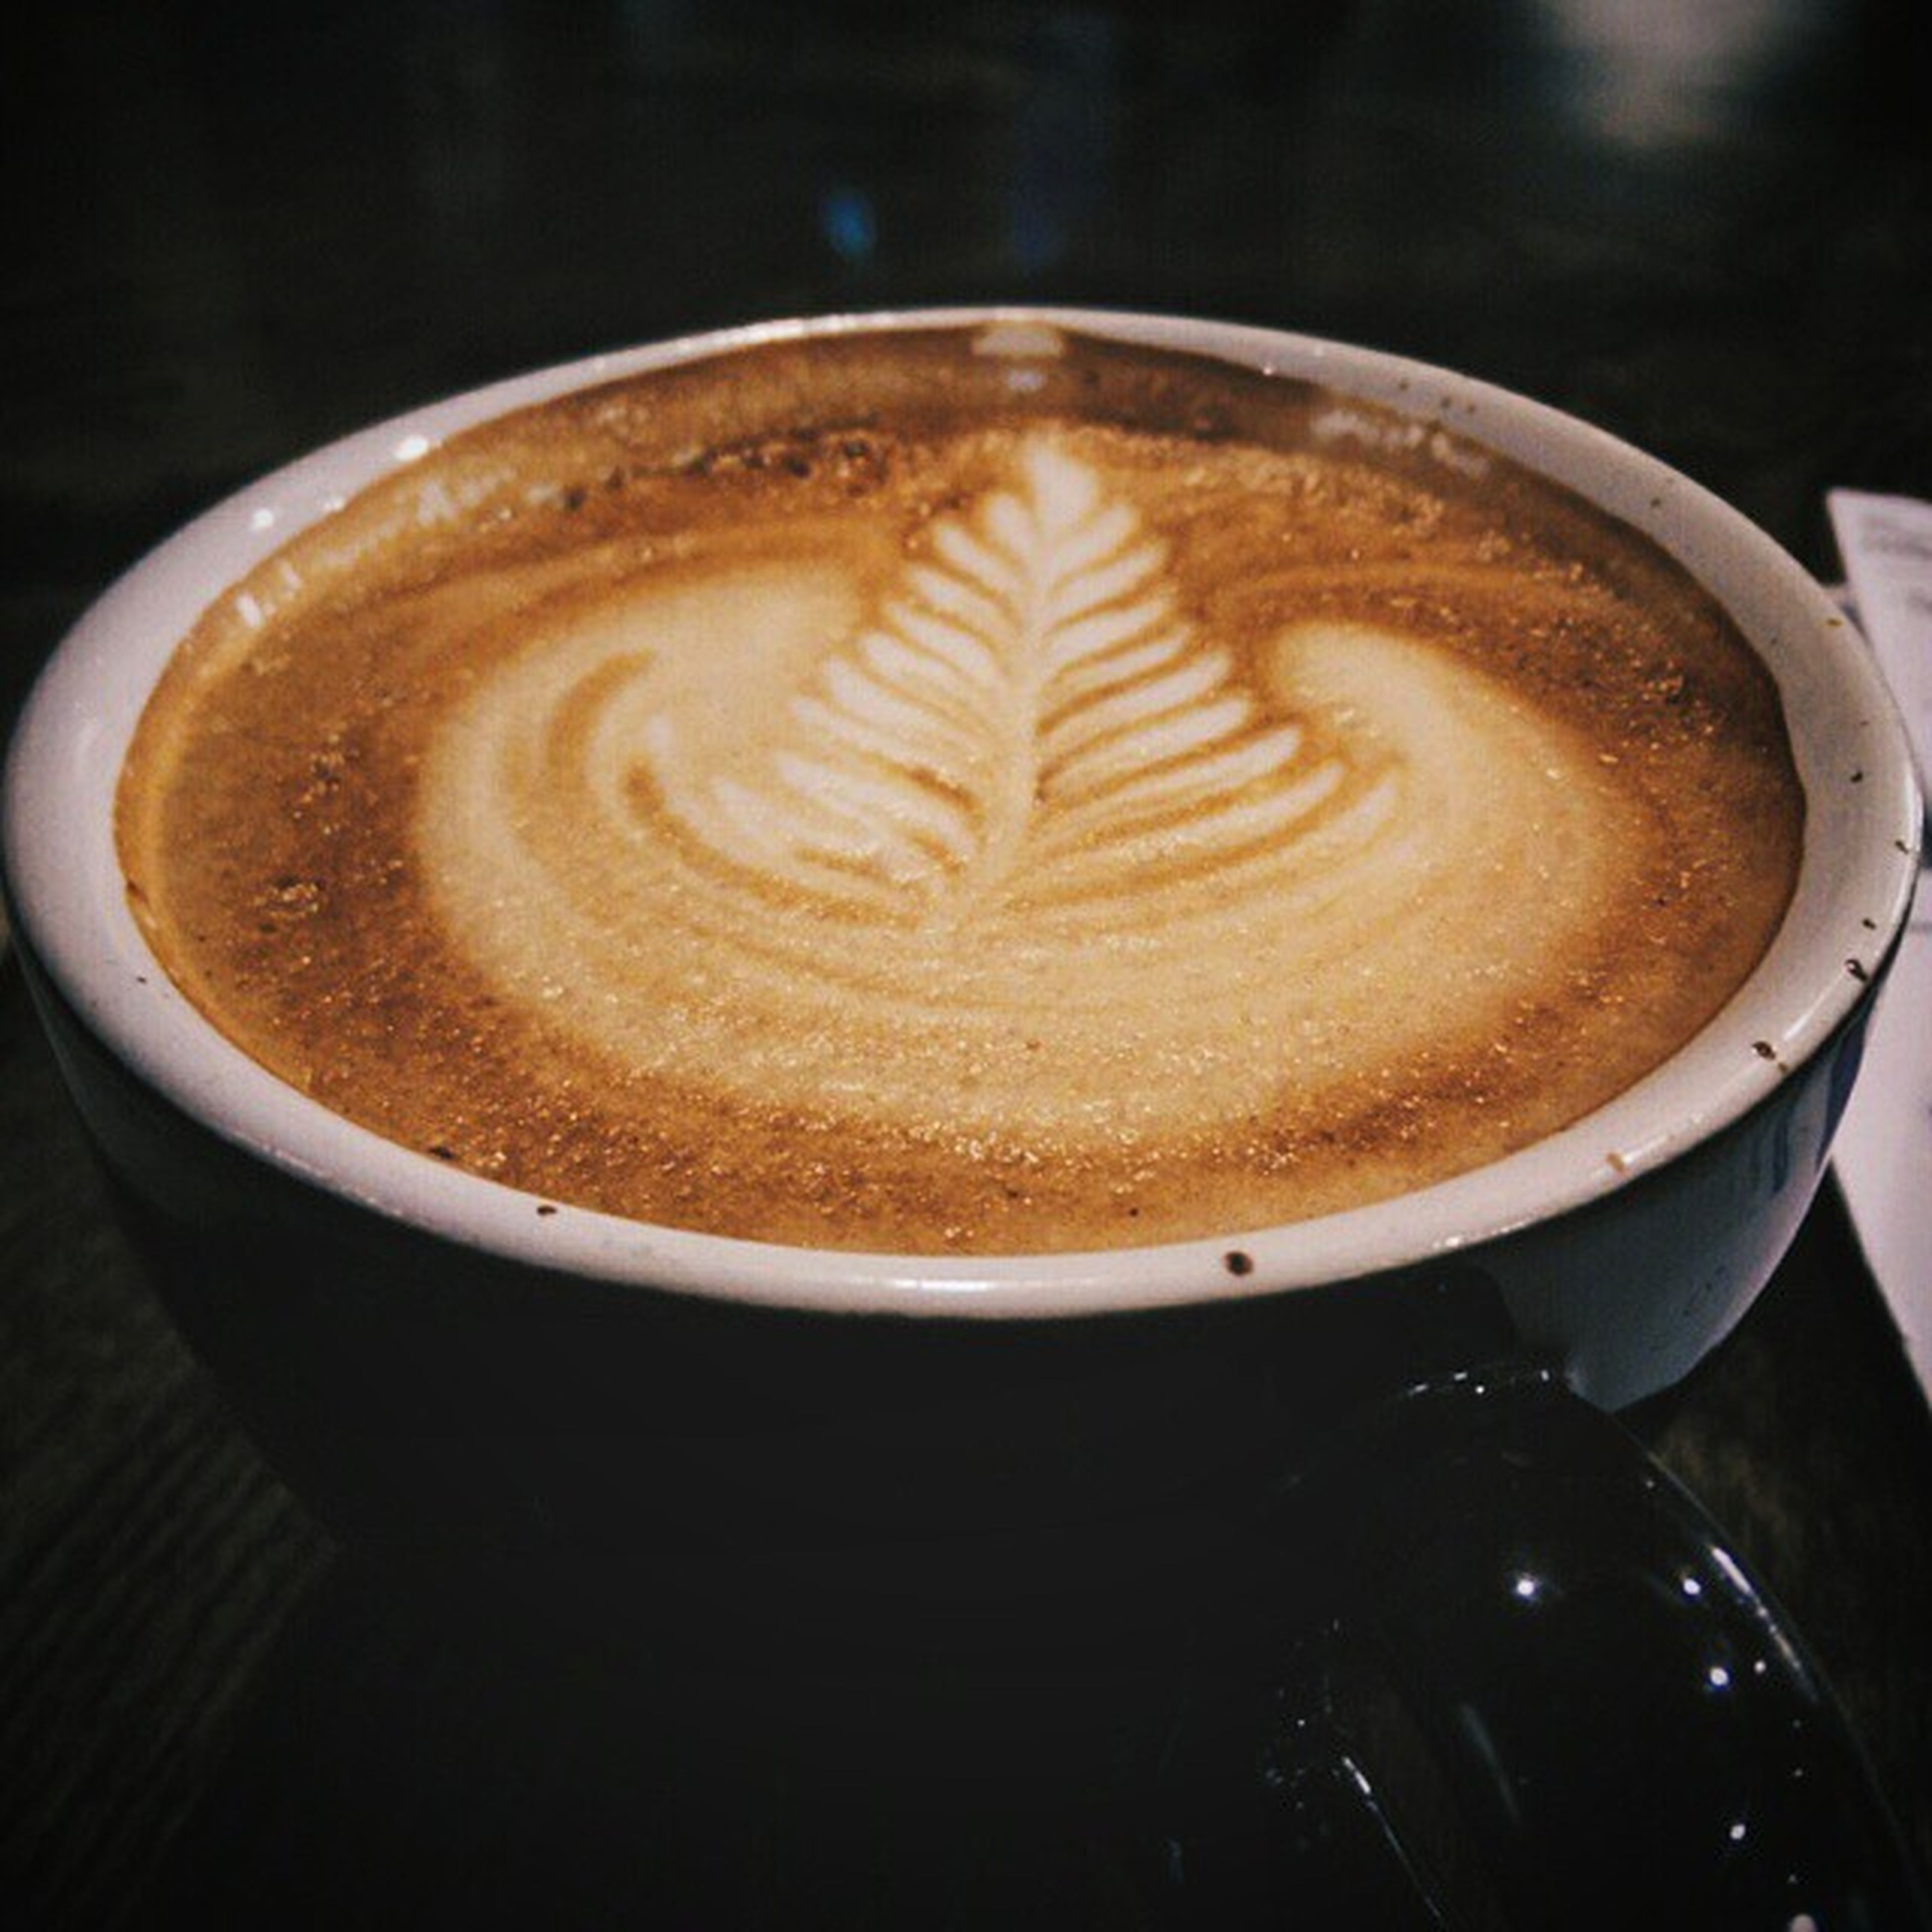 coffee cup, drink, refreshment, coffee - drink, froth art, frothy drink, cappuccino, food and drink, saucer, coffee, table, indoors, close-up, still life, freshness, latte, high angle view, cup, spoon, heart shape